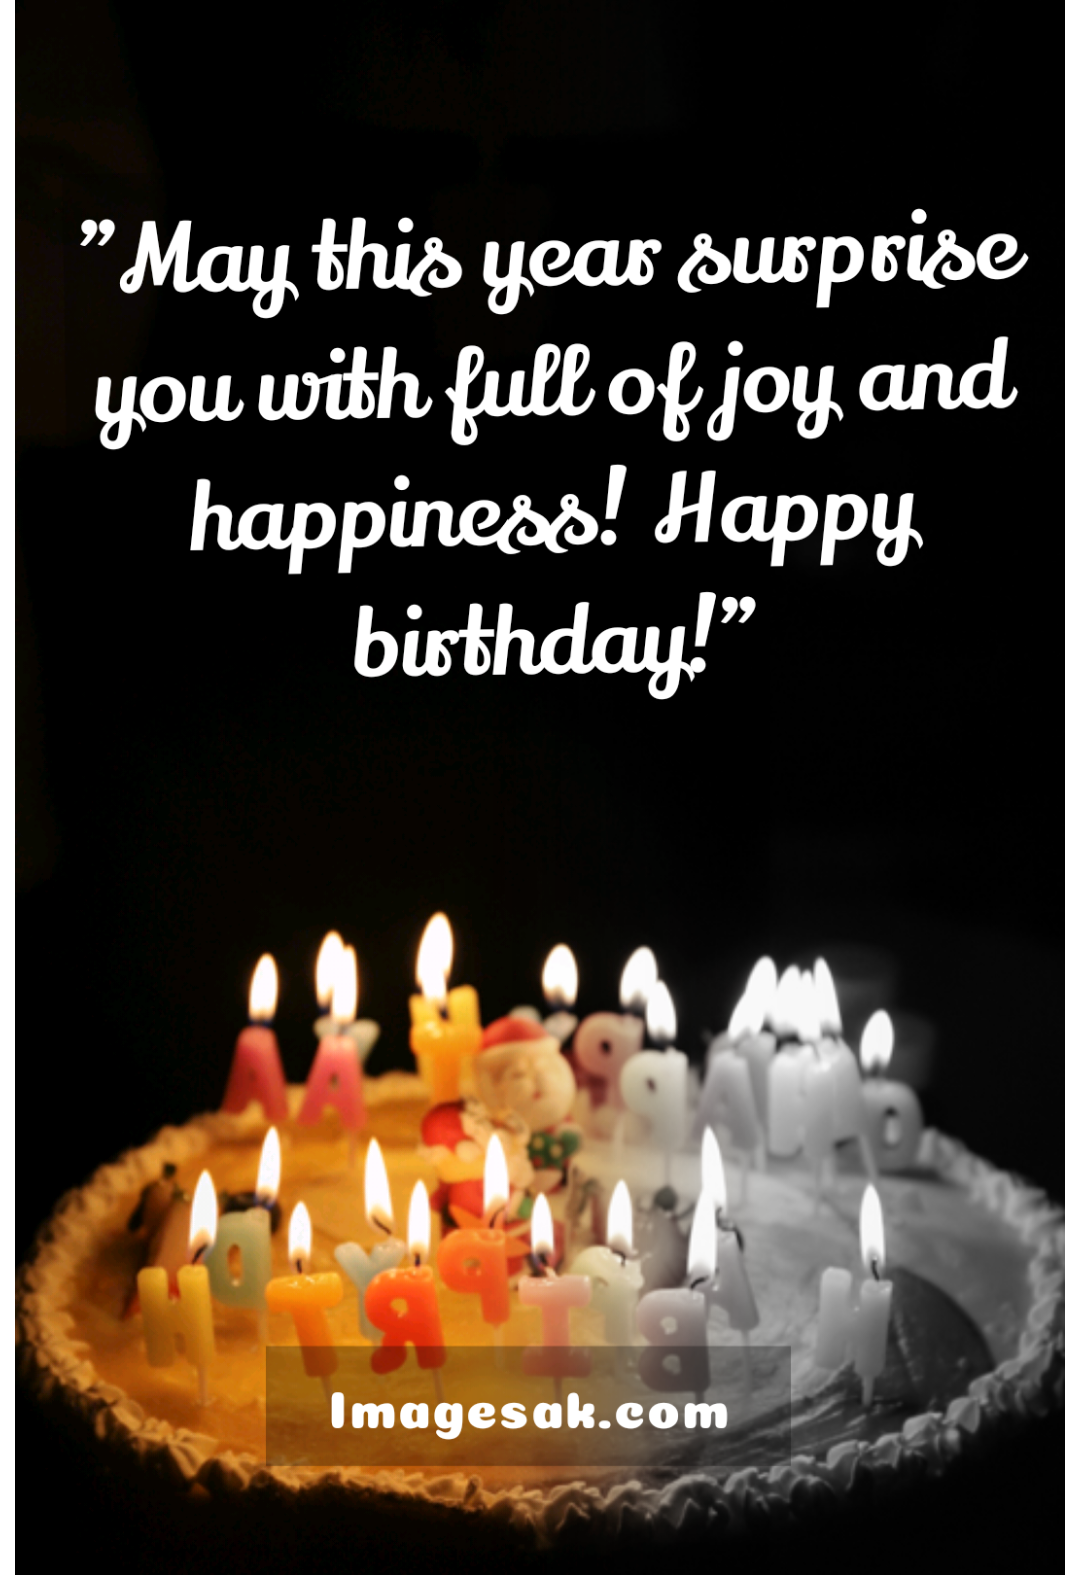 Happy Birthday Wishes For Best Friend - Images A K - All ...